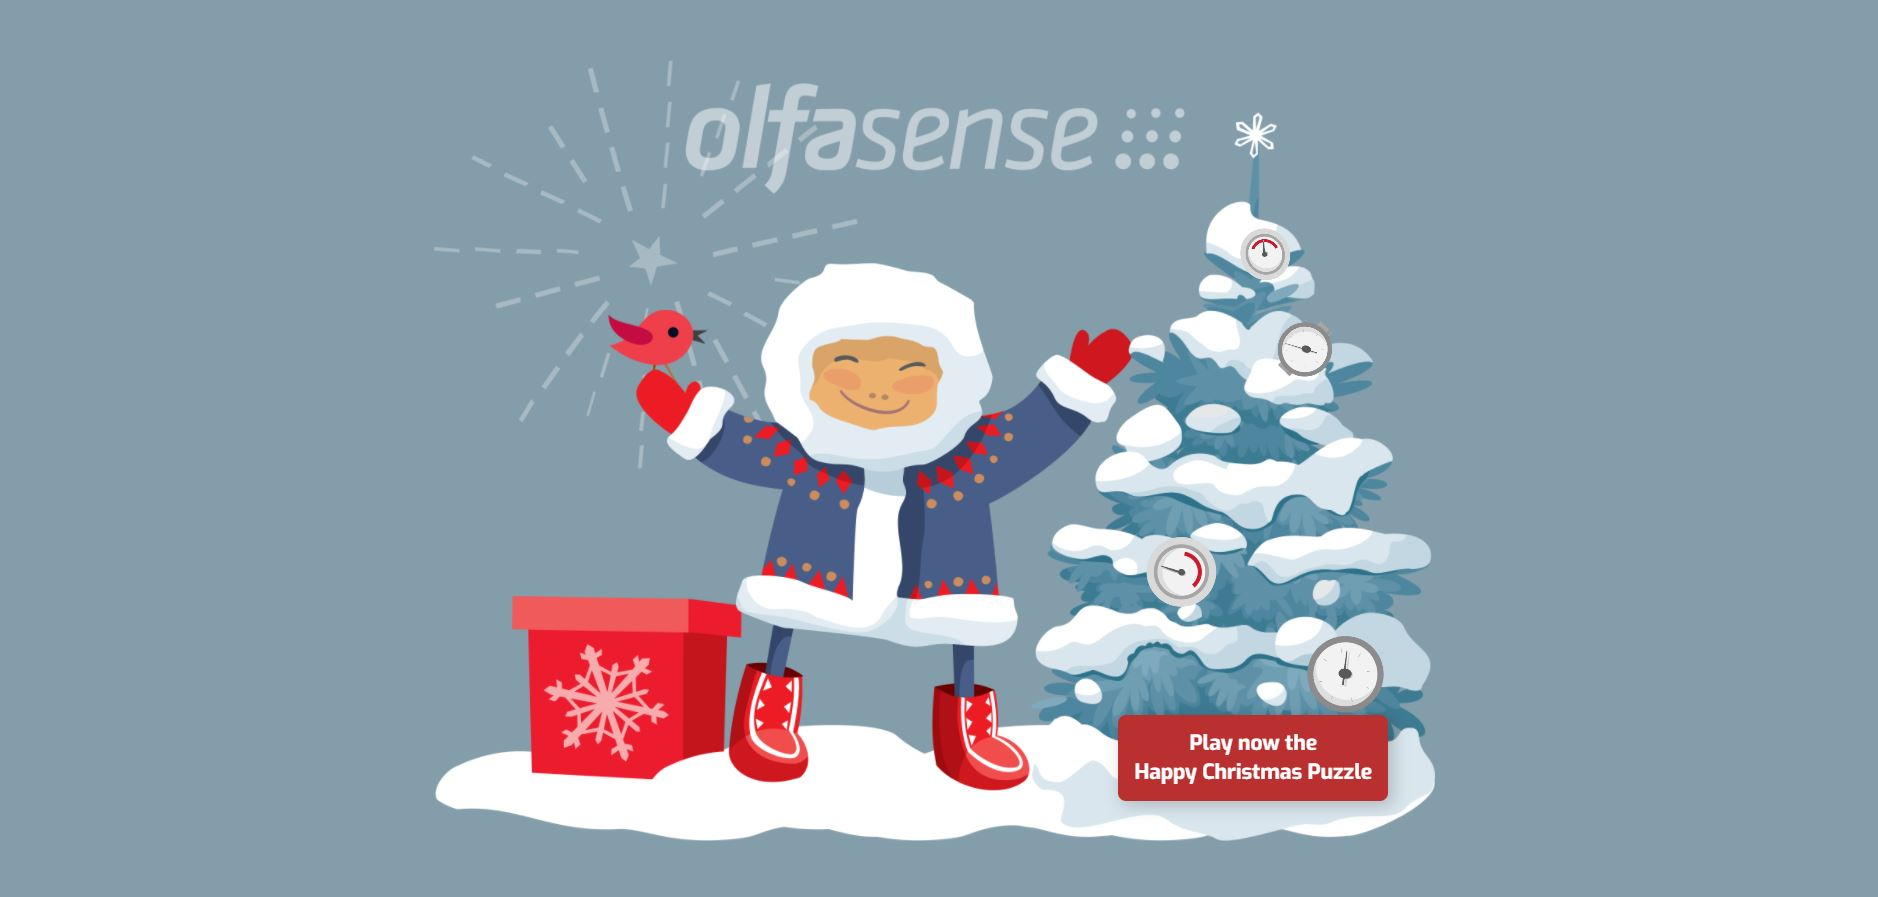 Olfasense Holiday Greetings